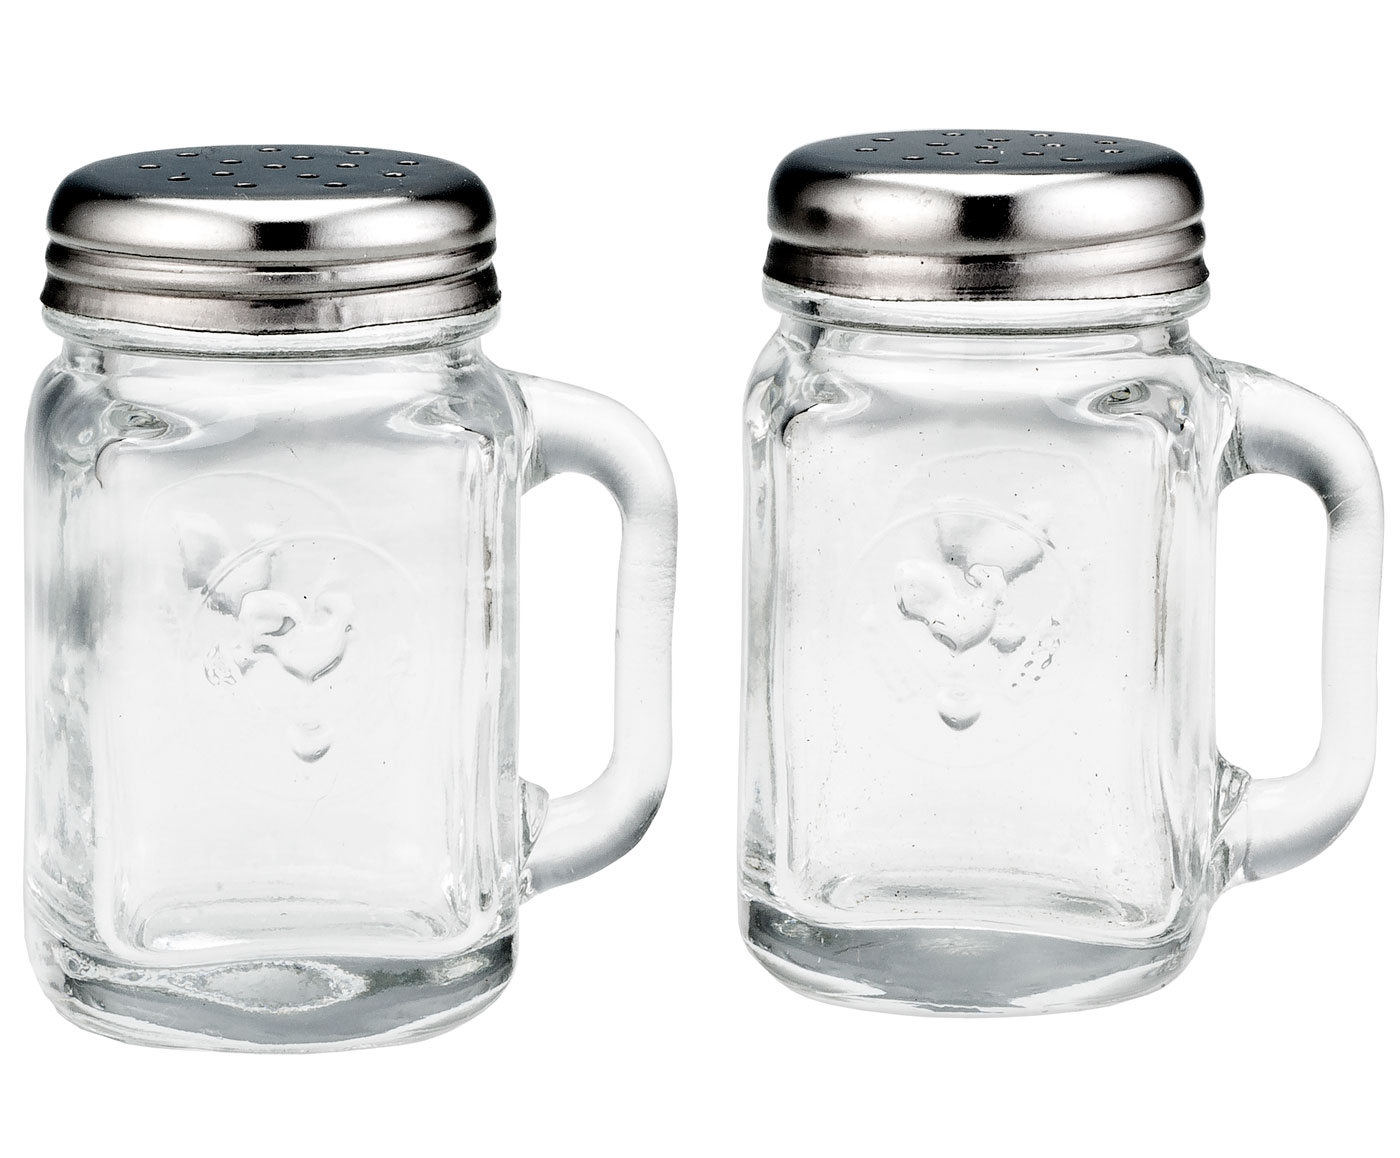 Mason Jar Salt & Pepper Shakers by WalterDrake